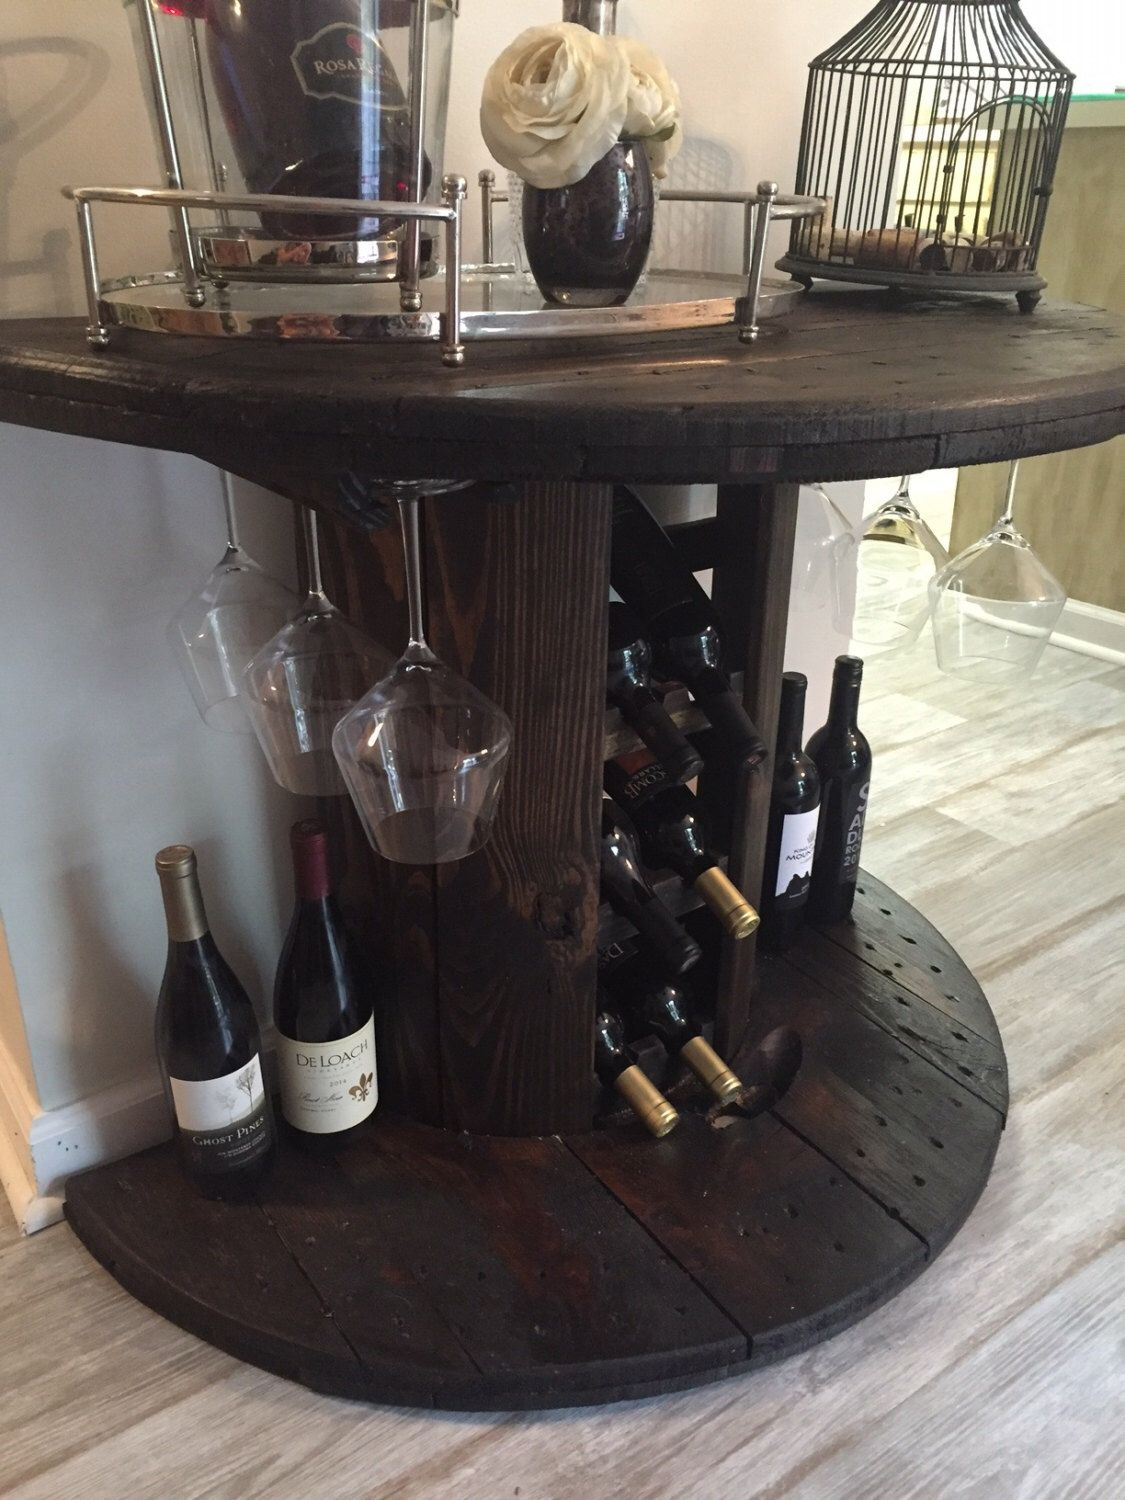 How to make a sofa table from cable wood reel - Reclaimed Wooden Cable Spool Wine Bar Wine Rack Rustic Furniture Industrial Wine Rack Wine Storage Wine Bar Cable Spool